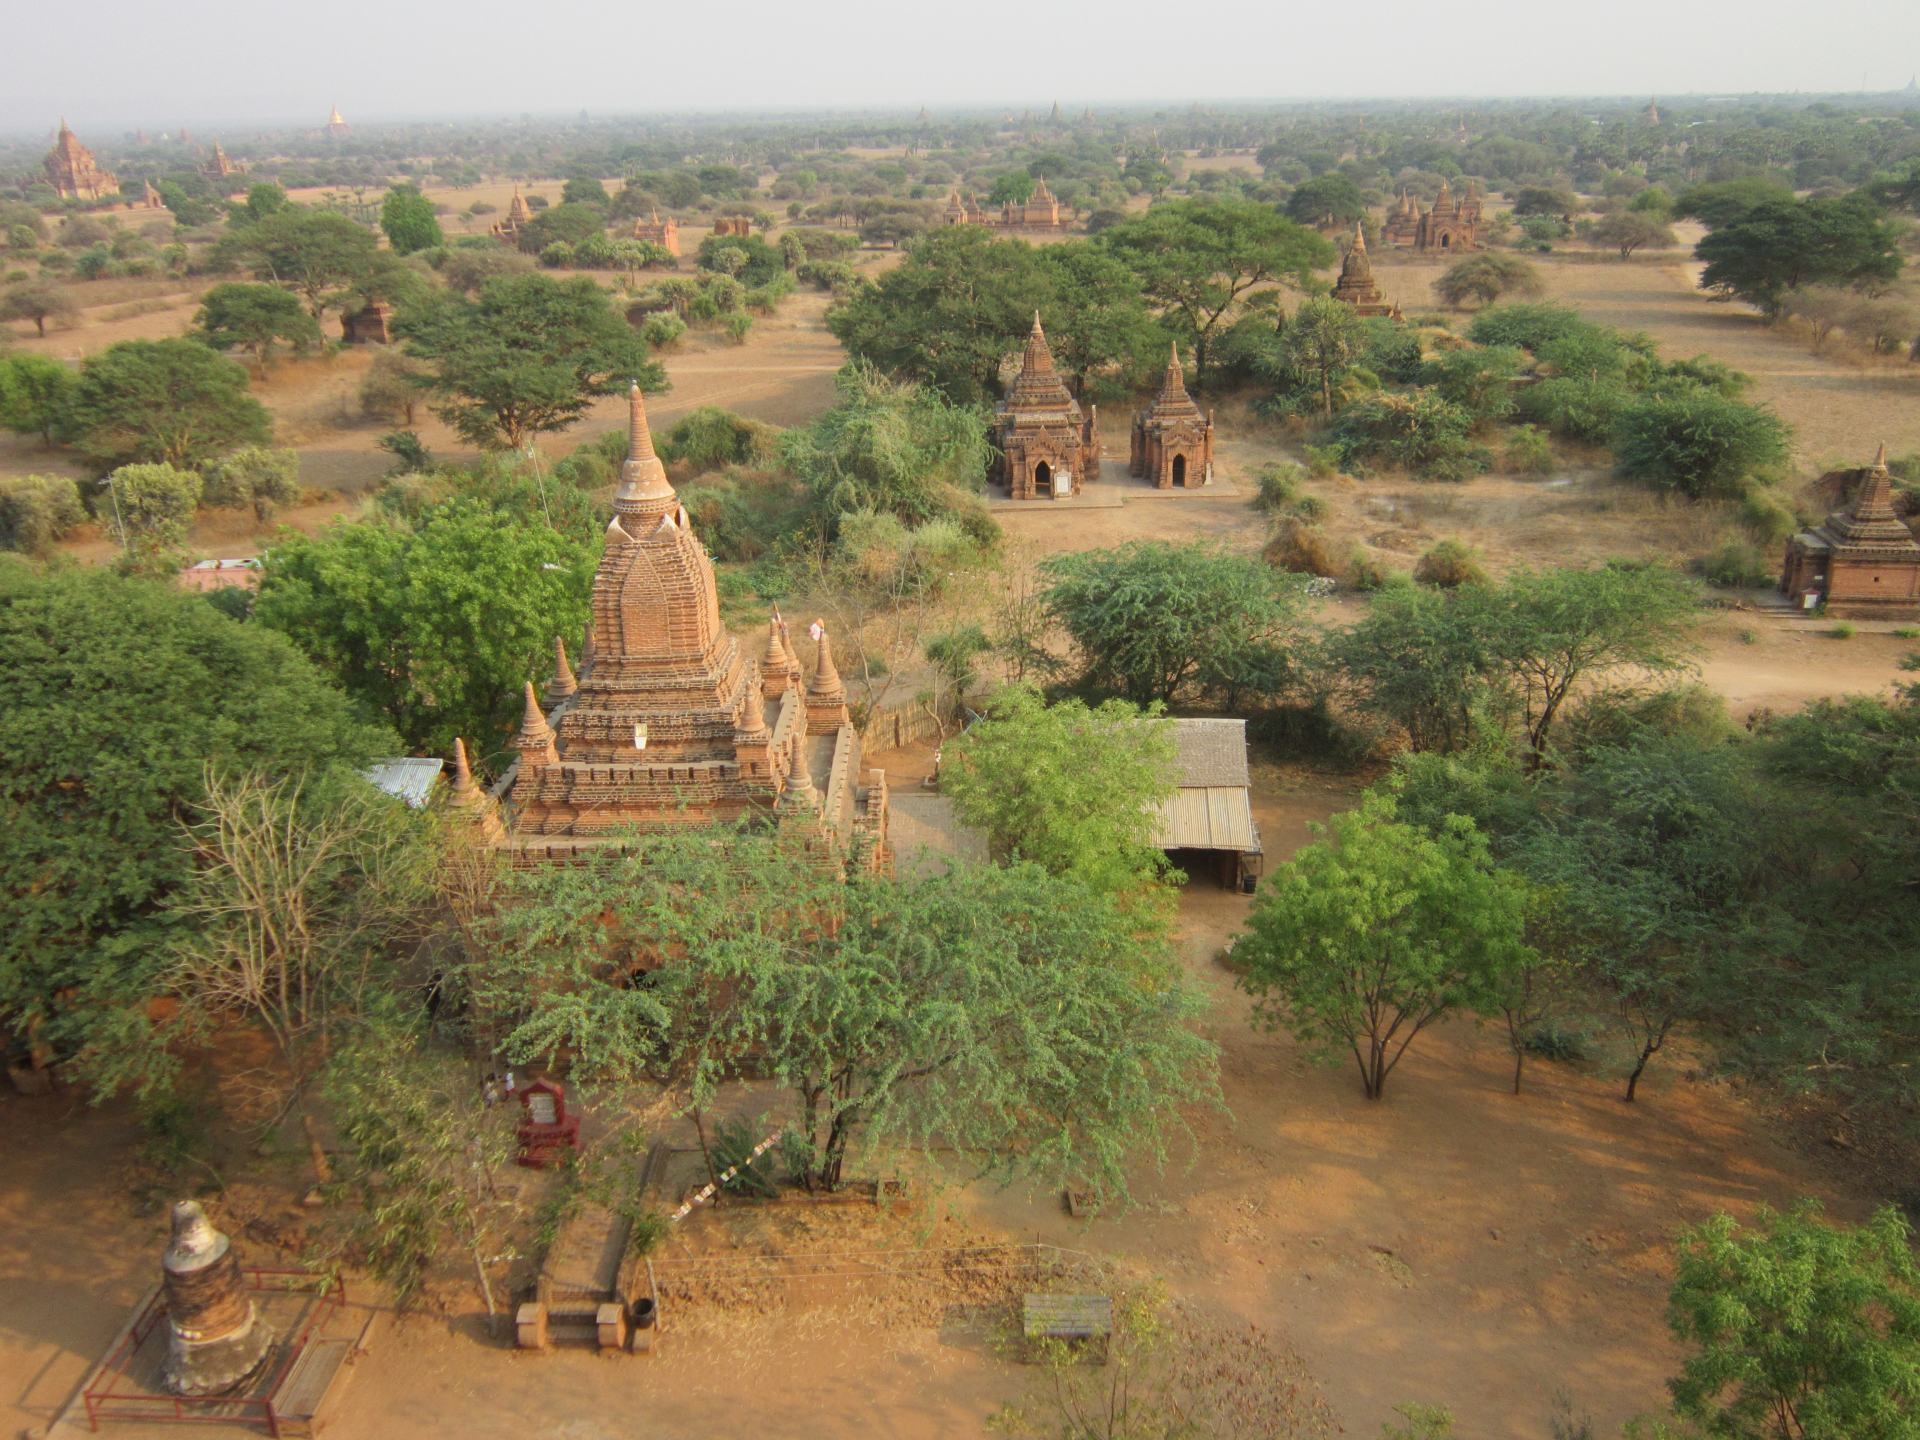 A view across Bagan, showing temples dotted around the dry landscape with tree's spread around too.